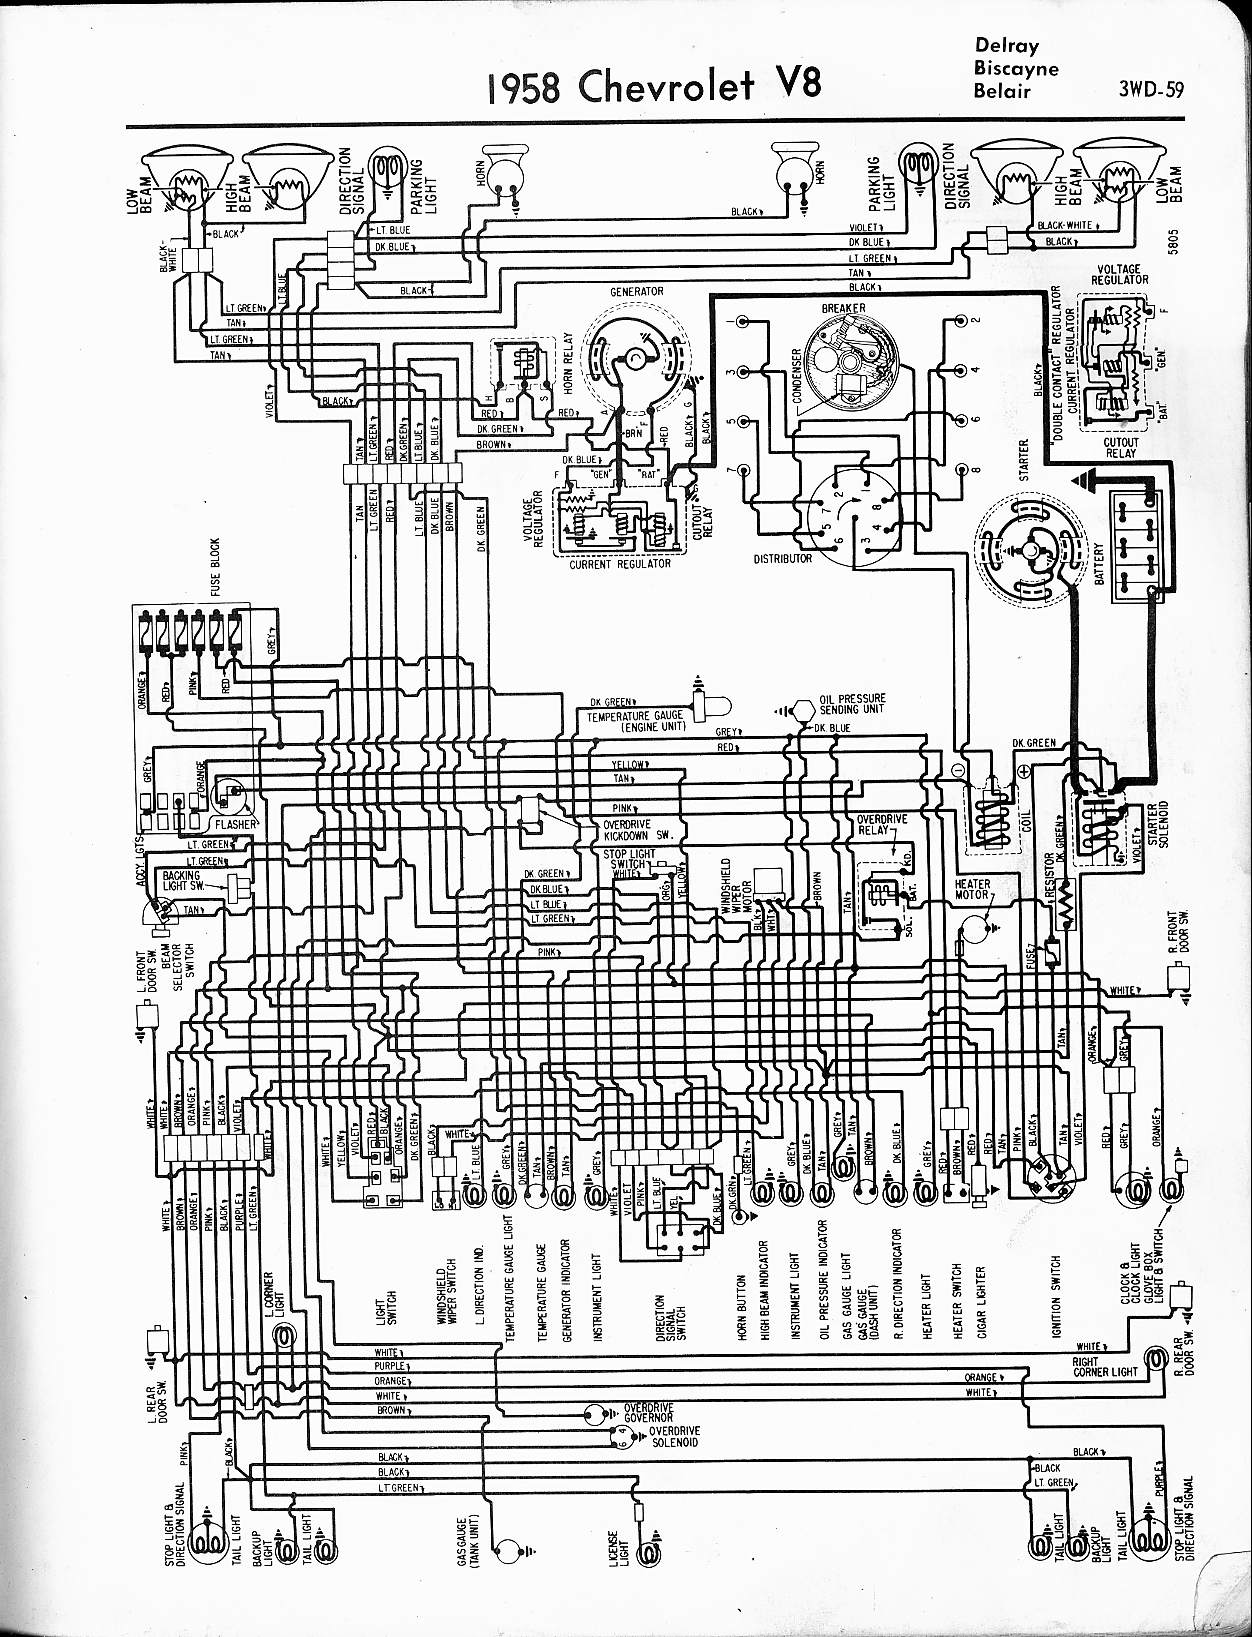 MWireChev58_3WD 059 chevy wiring diagrams chevy radio wiring \u2022 wiring diagrams j 97 F150 Wiring Diagram at reclaimingppi.co